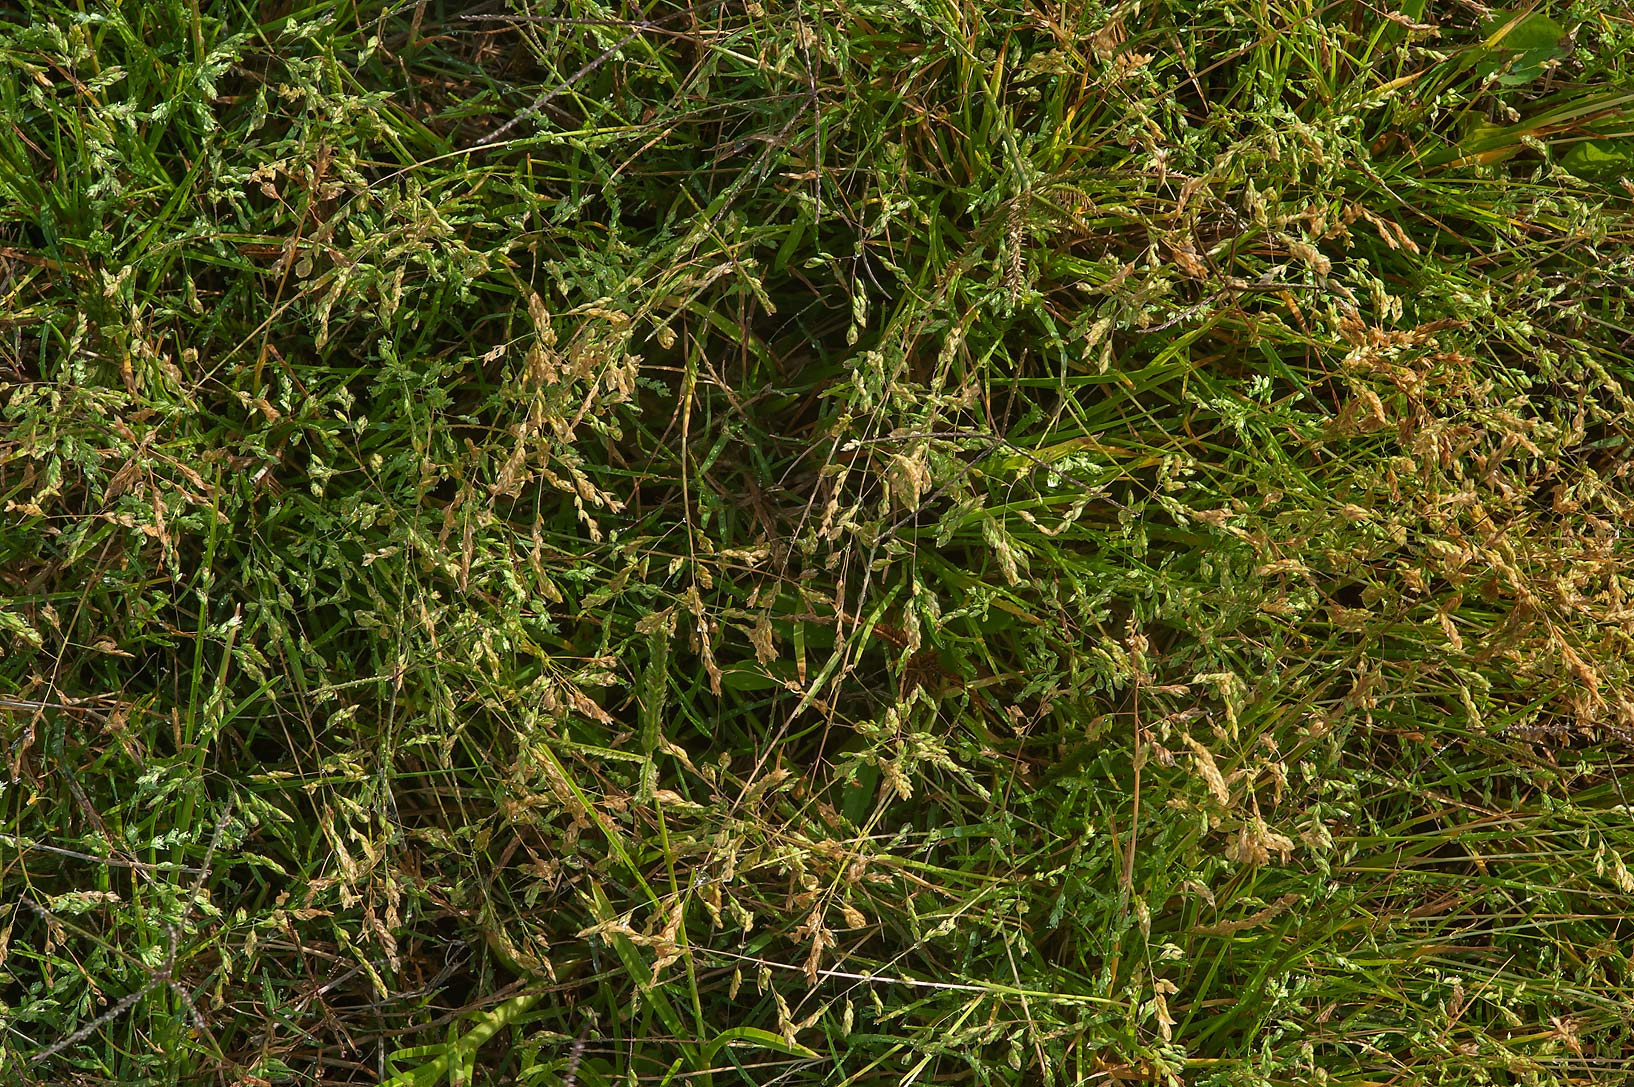 Annual meadow grass (Poa annua) on Green Circles...in Irkhaya (Irkaya) Farms. Qatar